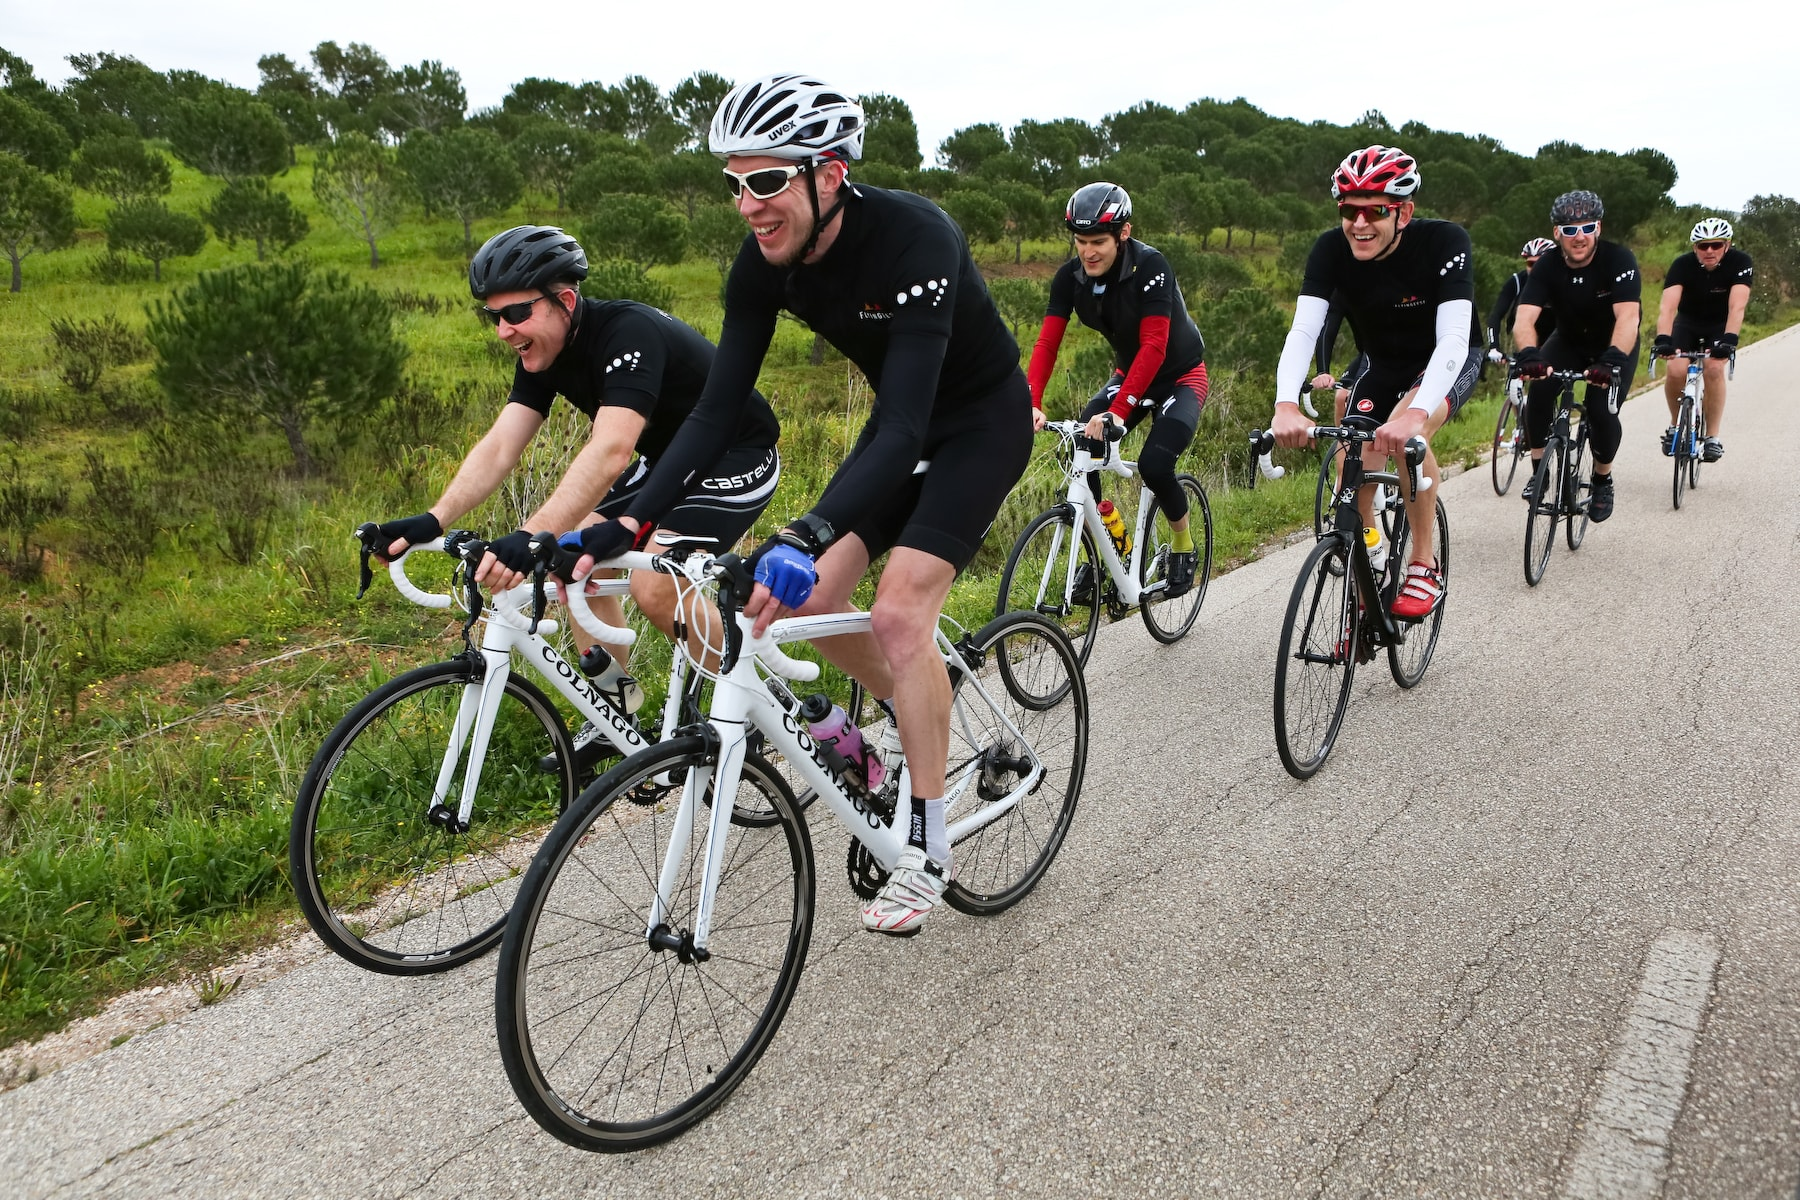 Group of cyclists on Colnago bikes